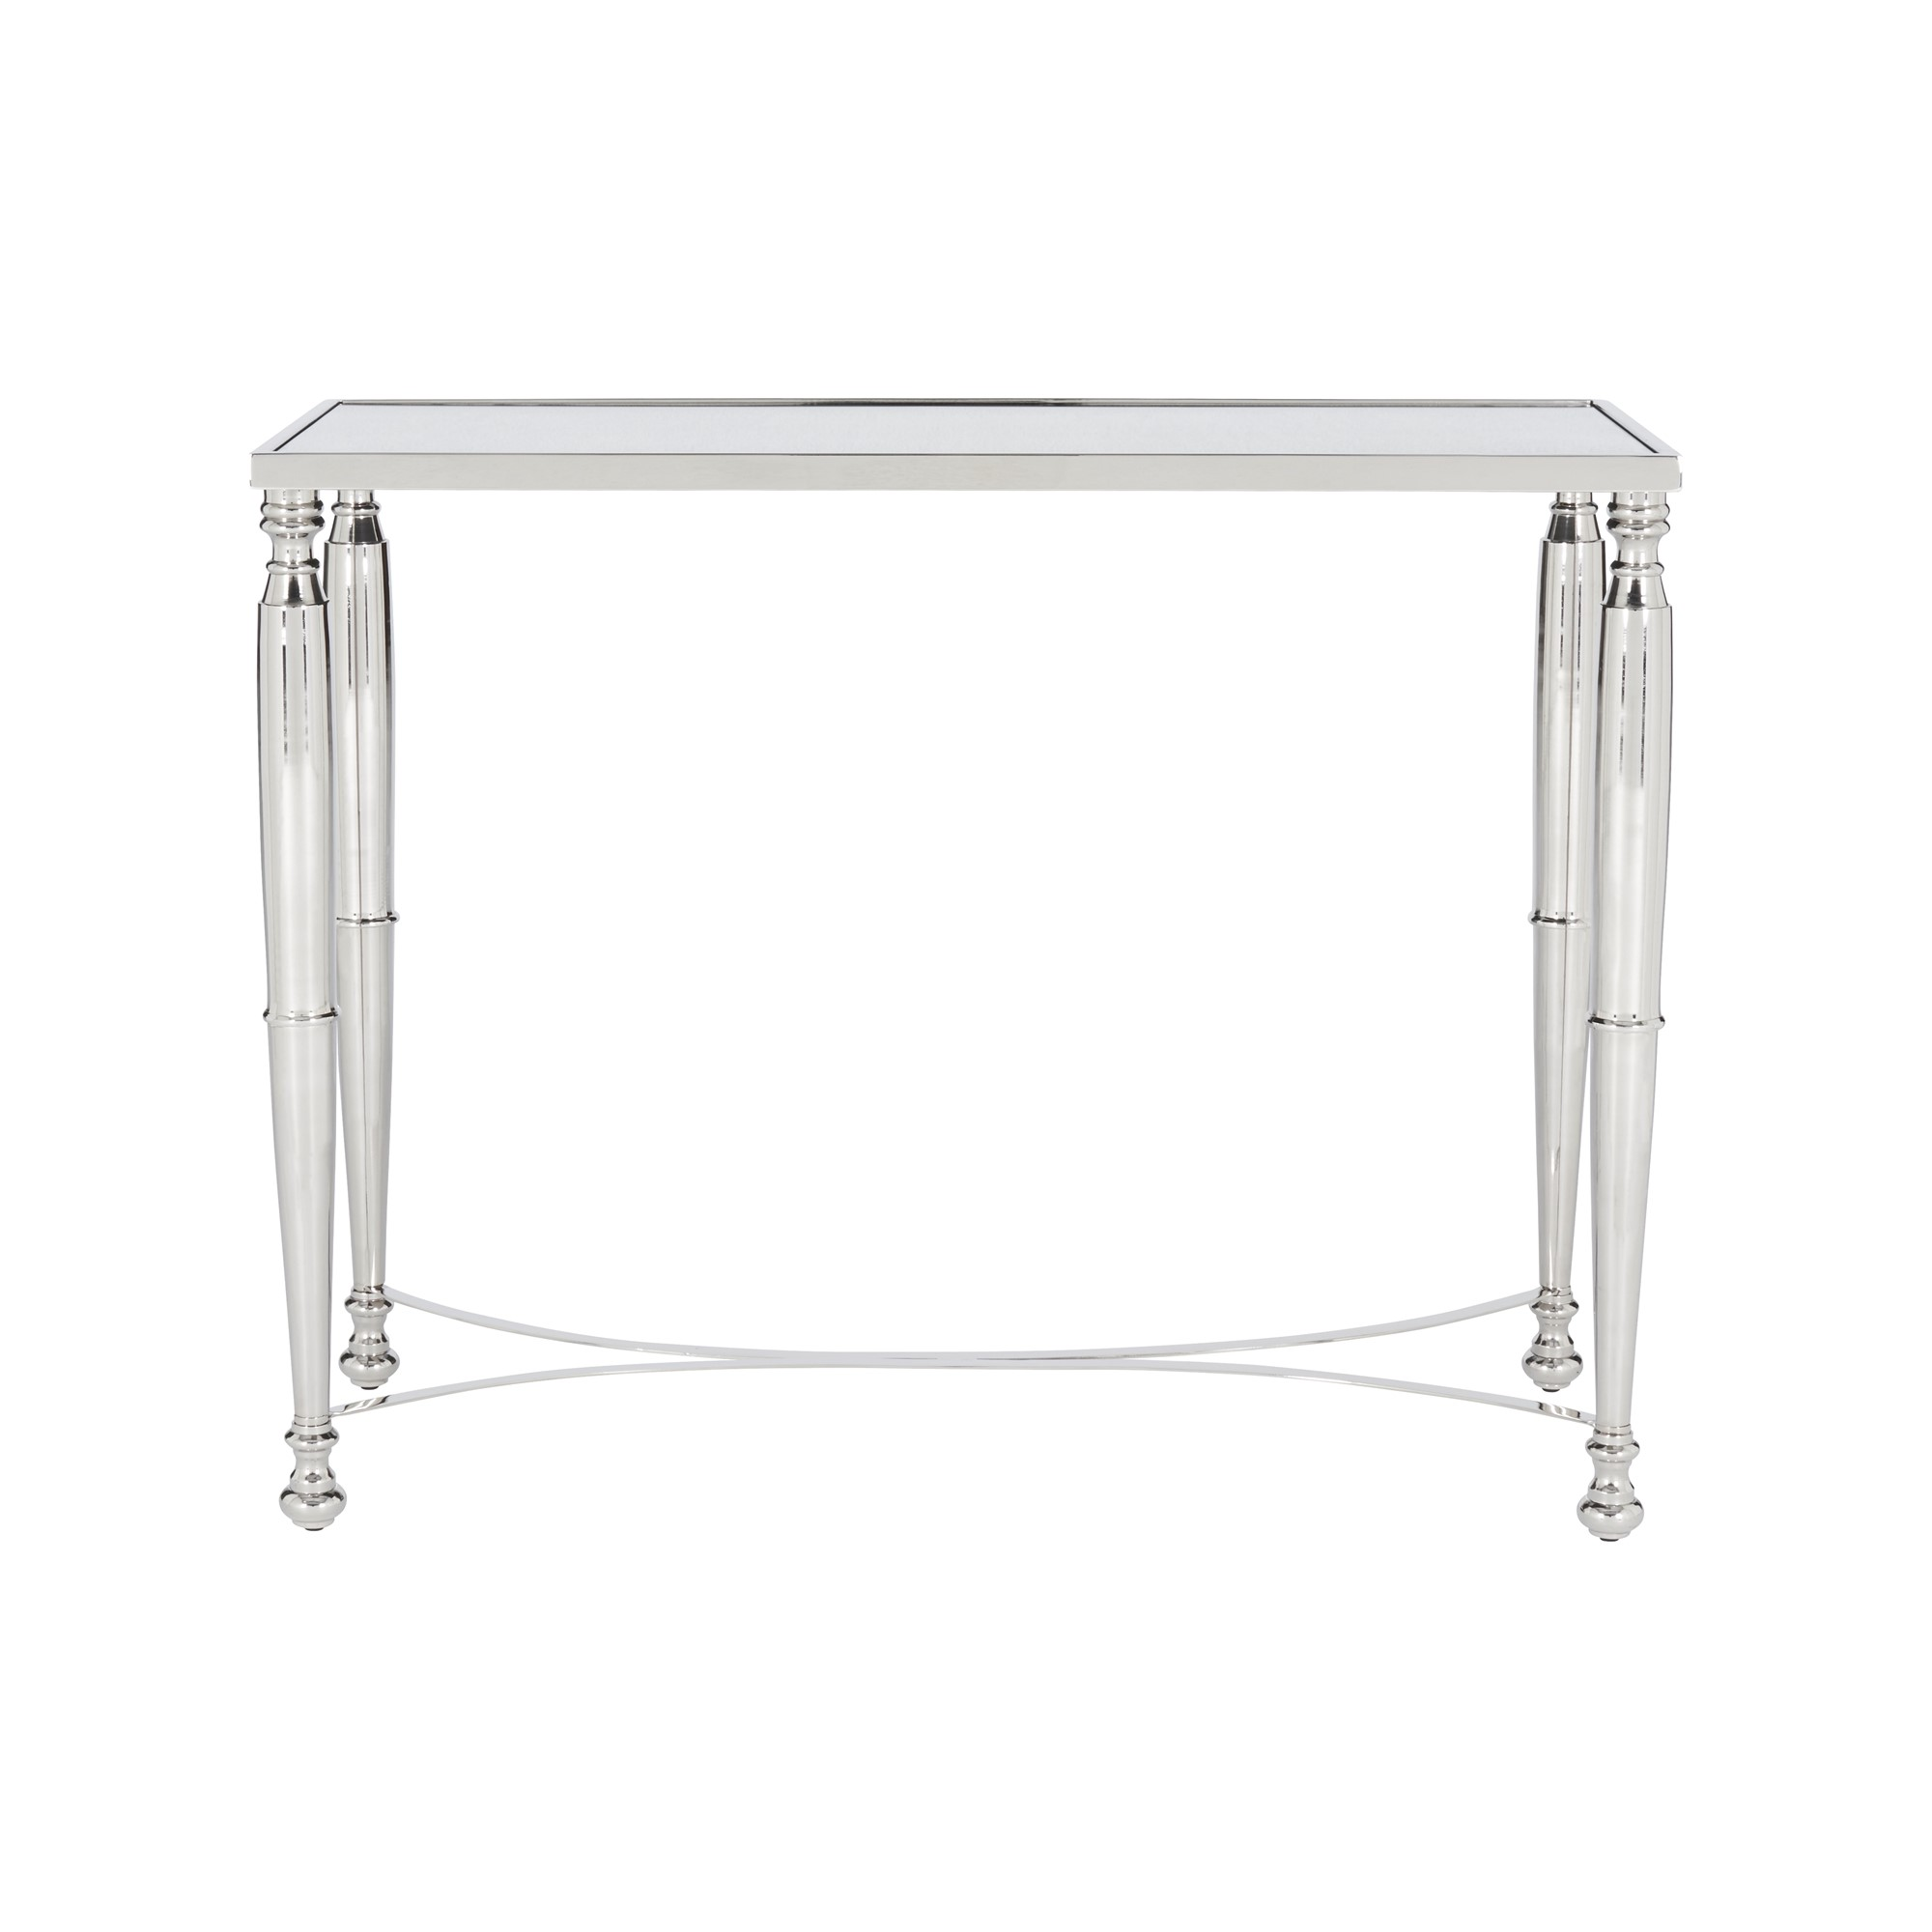 Awe Inspiring Goodge Console Table Mirrored Top Ncnpc Chair Design For Home Ncnpcorg